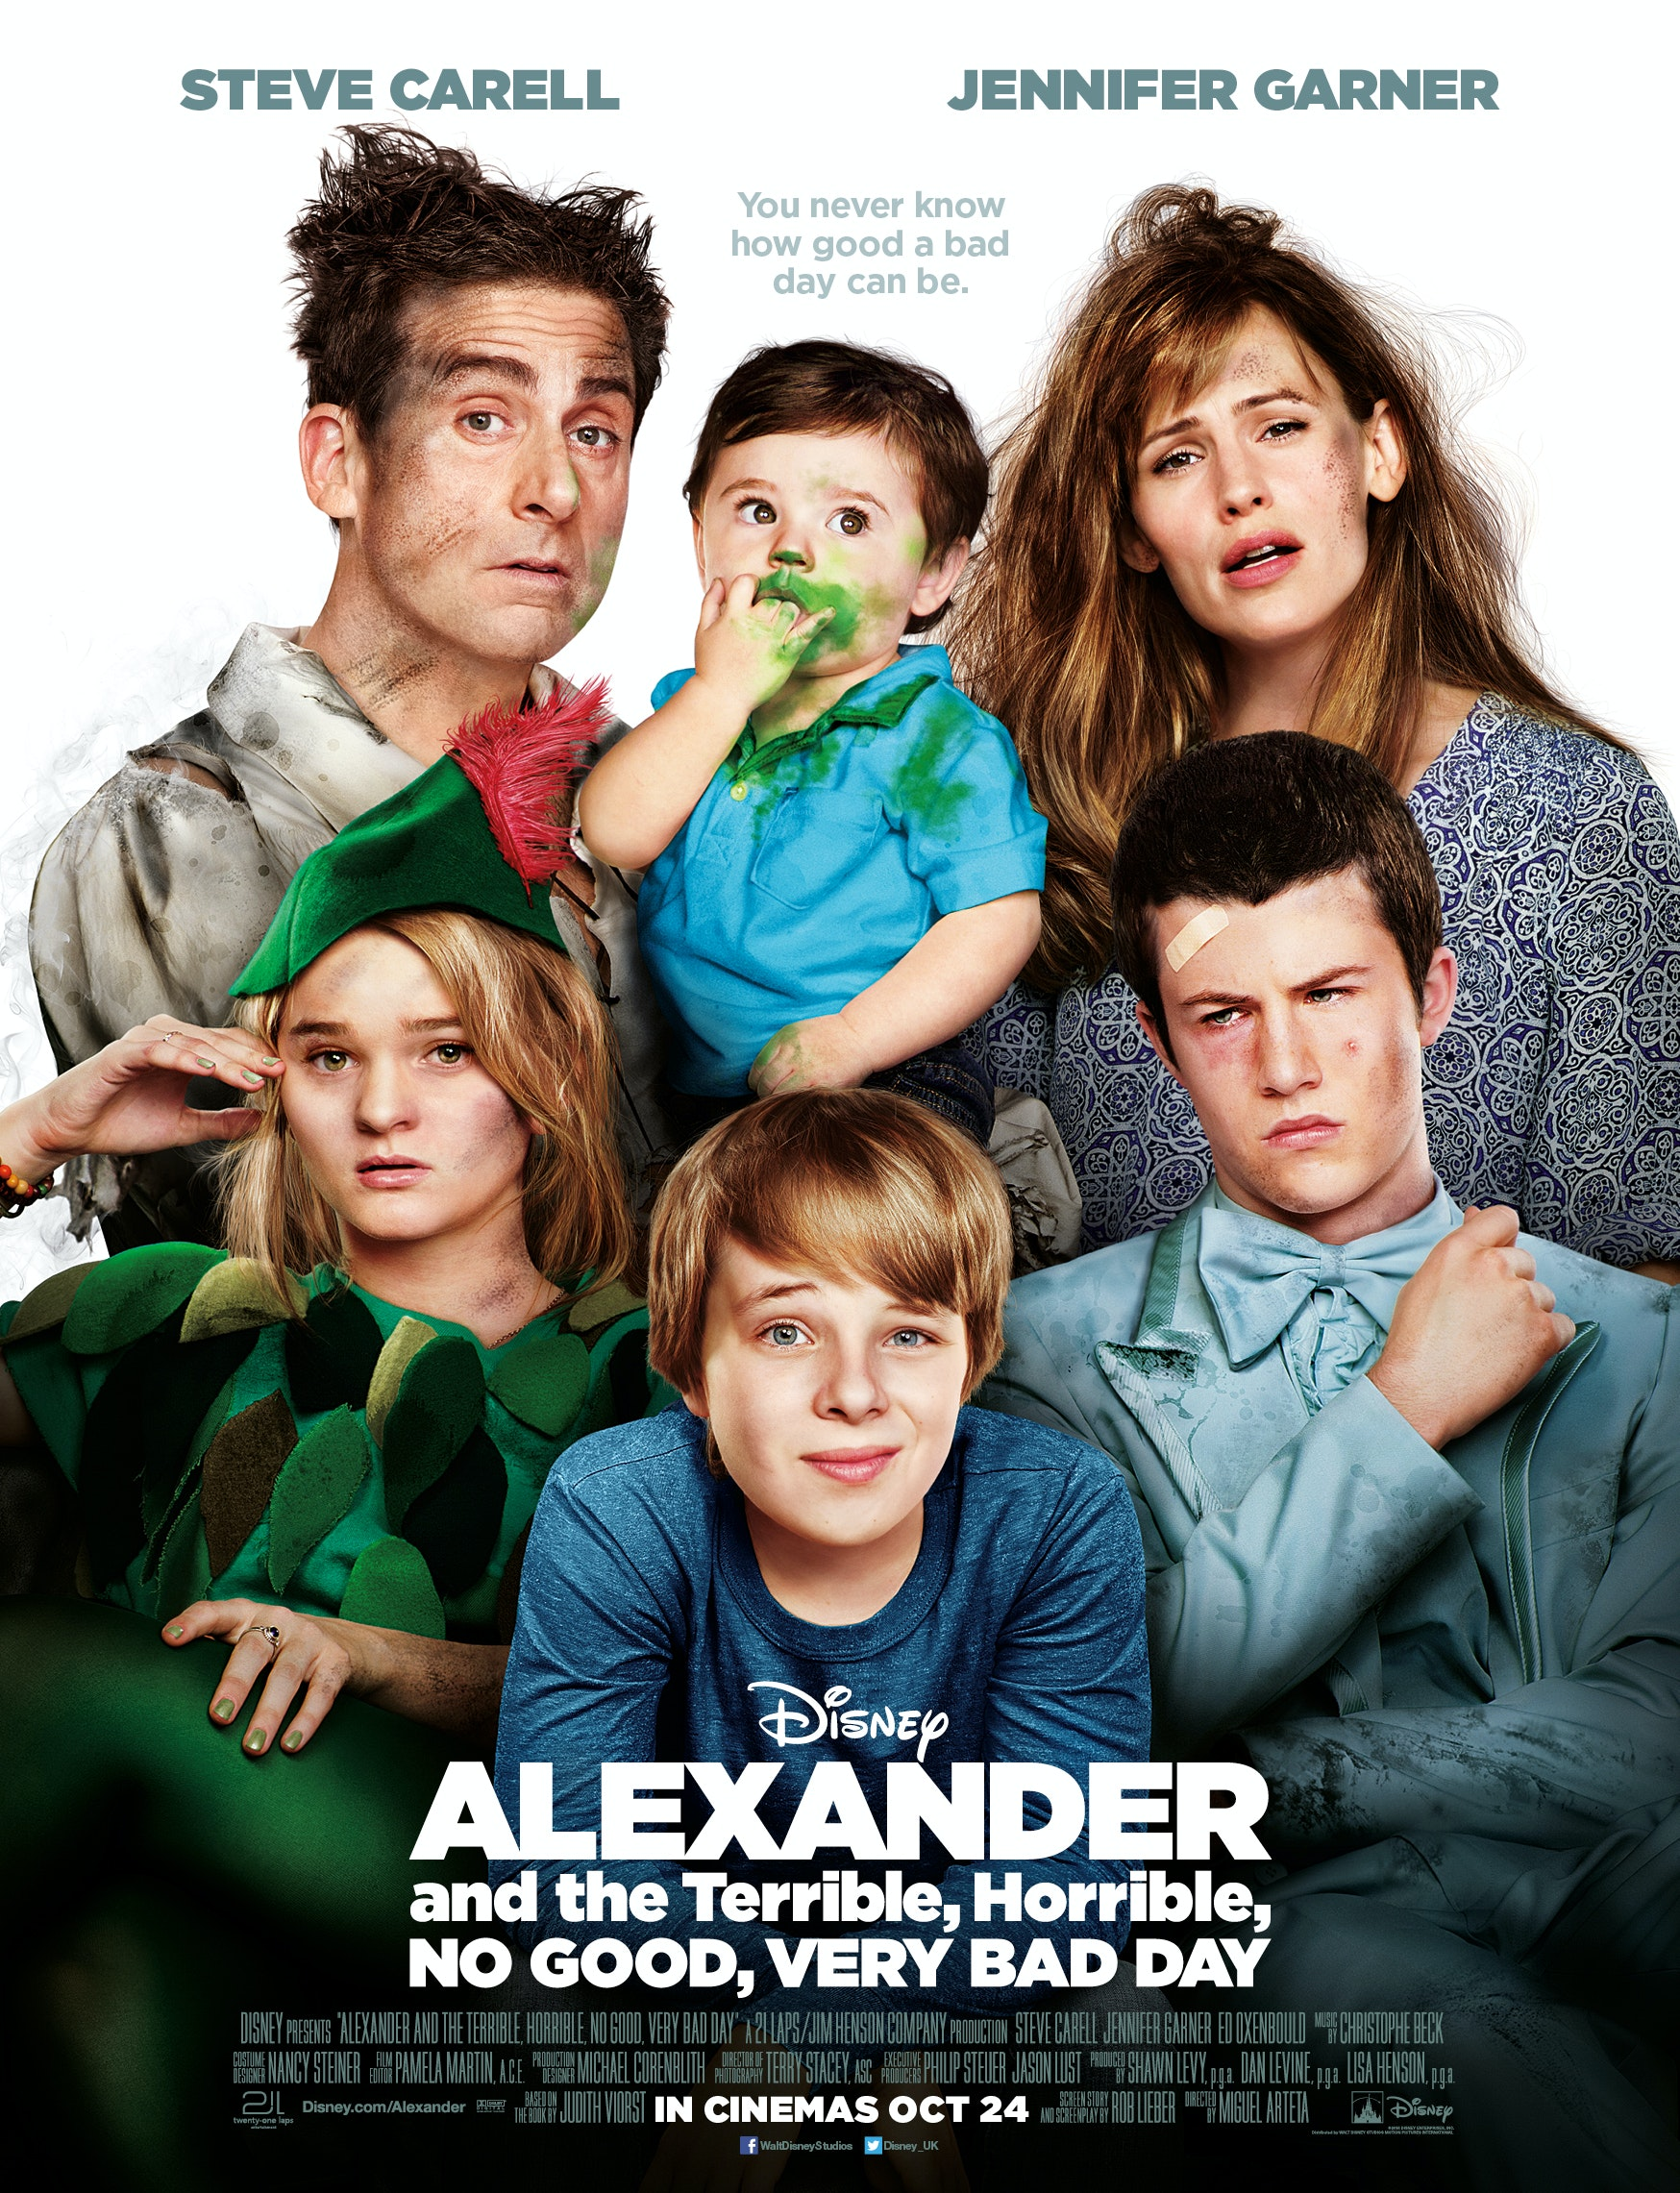 Alexander and the Terrible, Horrible, No Good, Very Bad Day sweepstakes